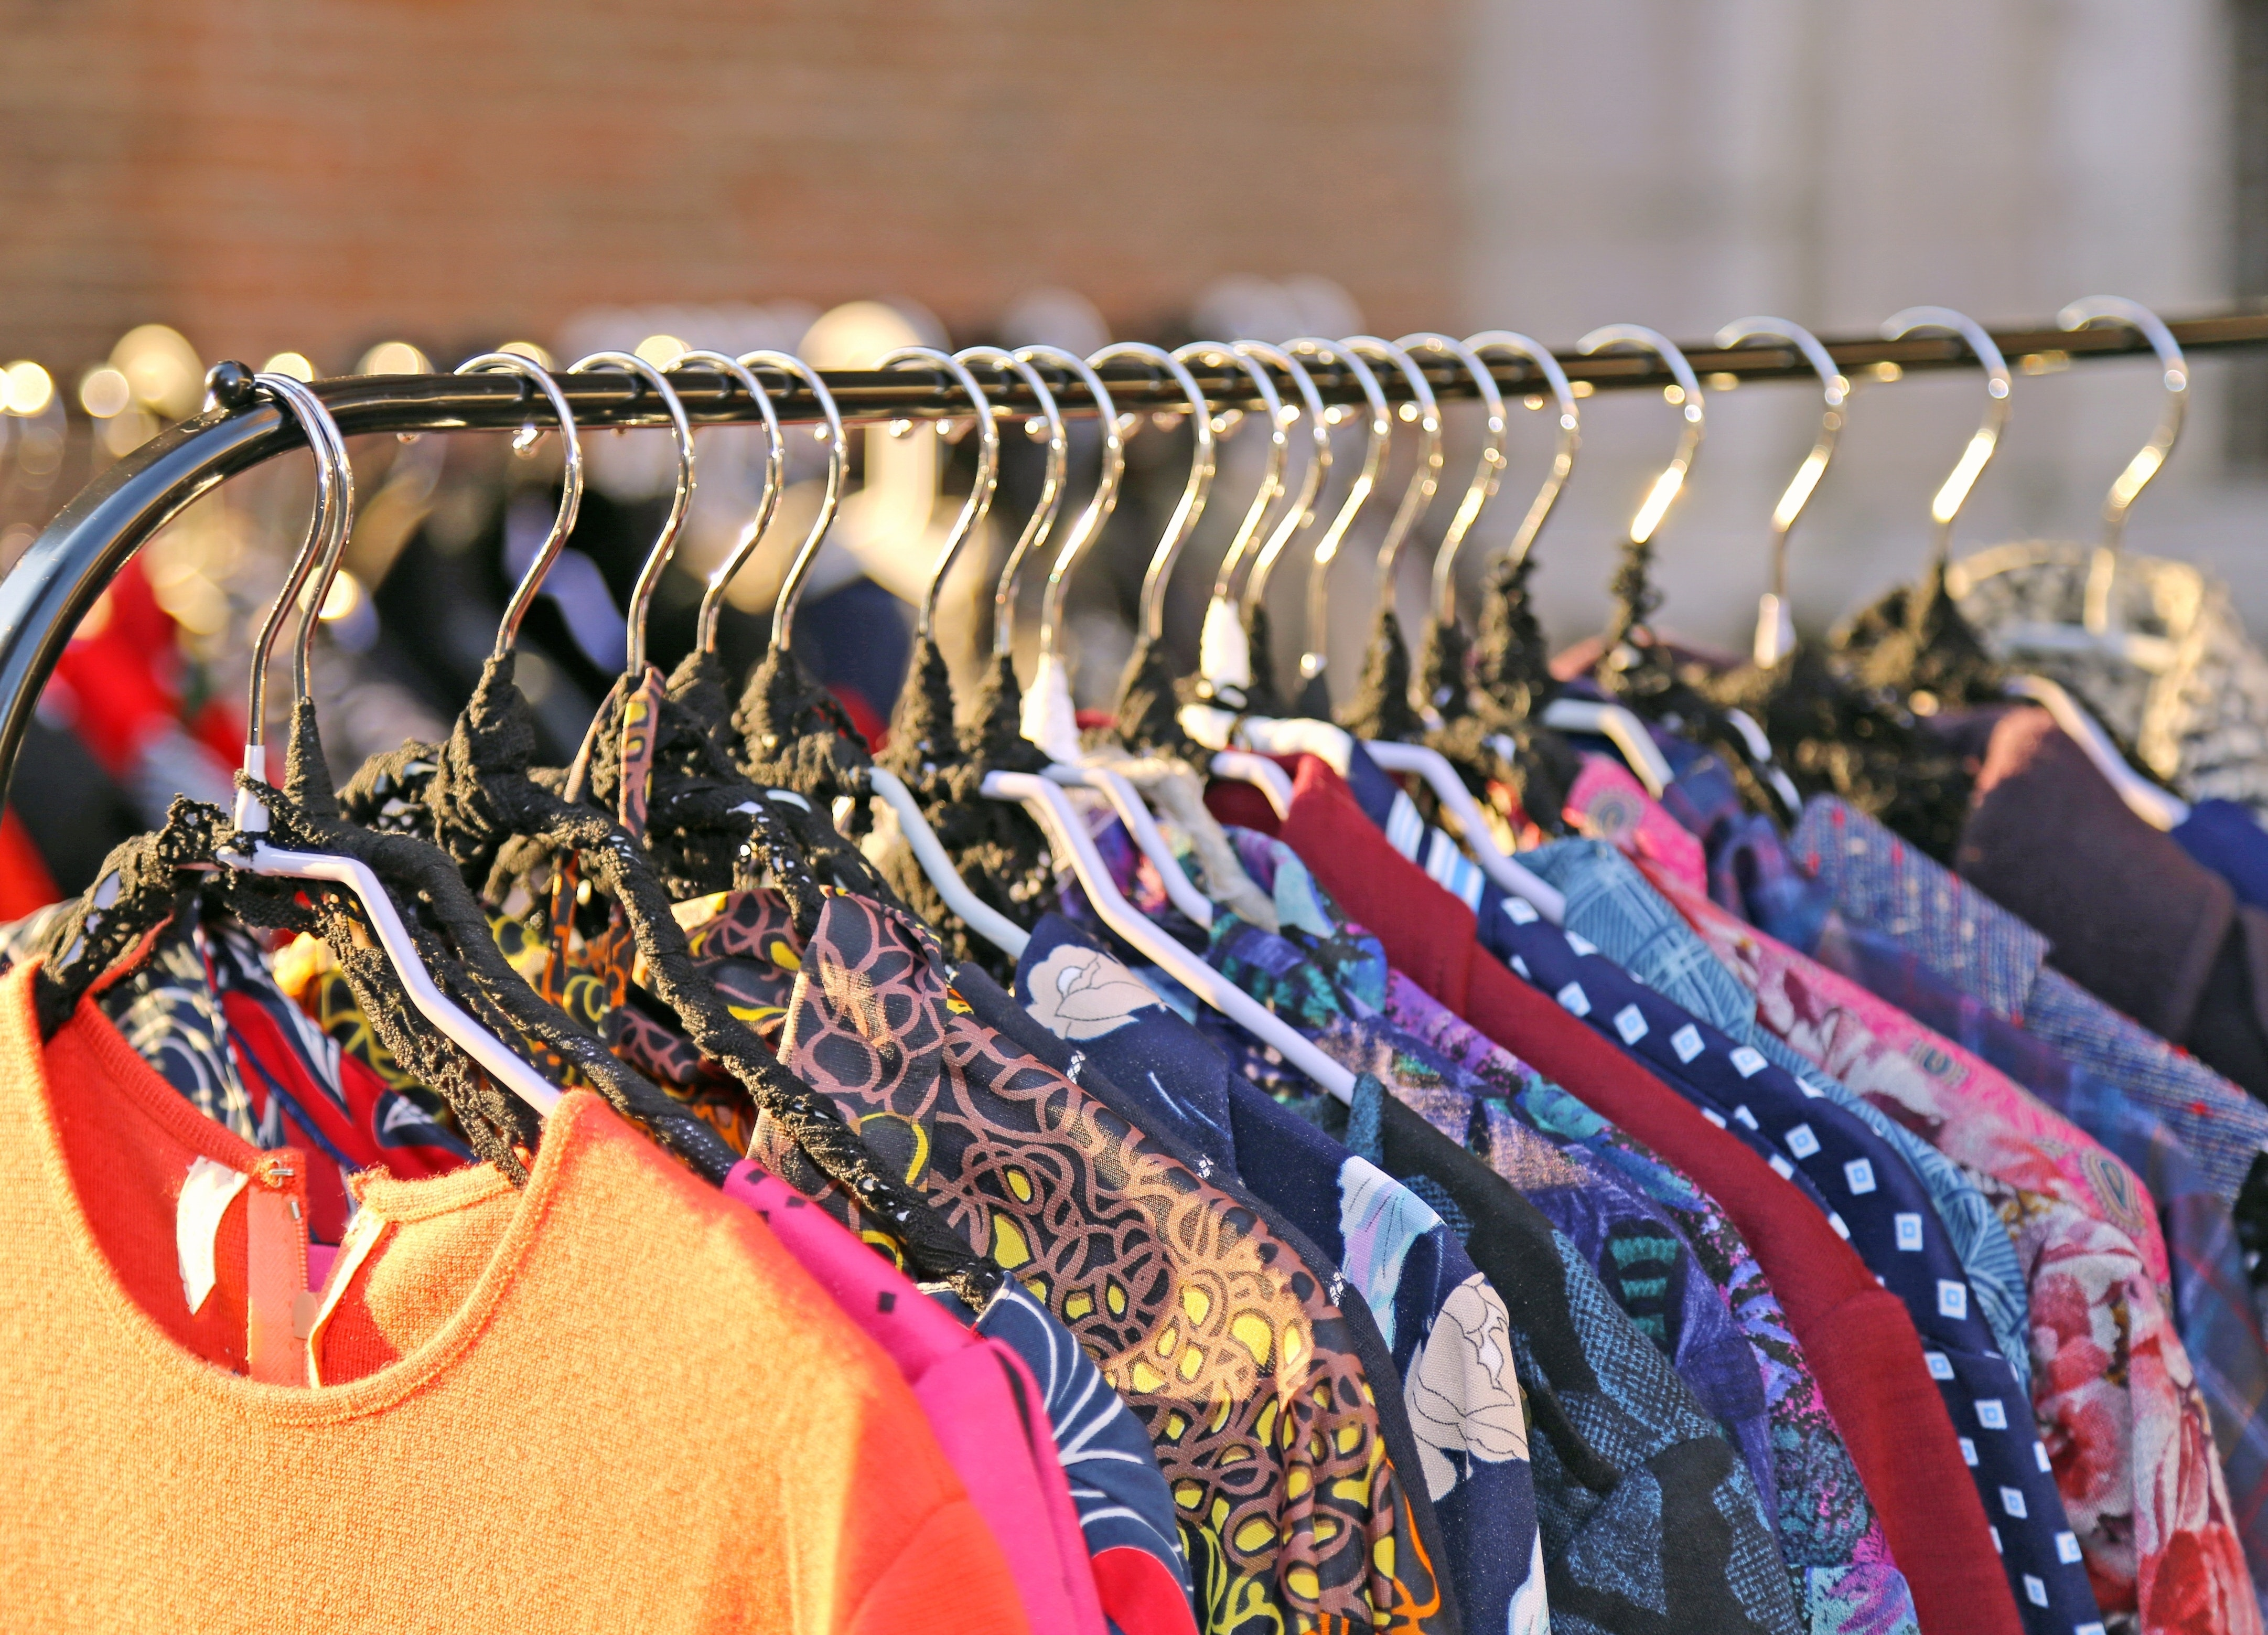 Recycled clothes hanging on rack